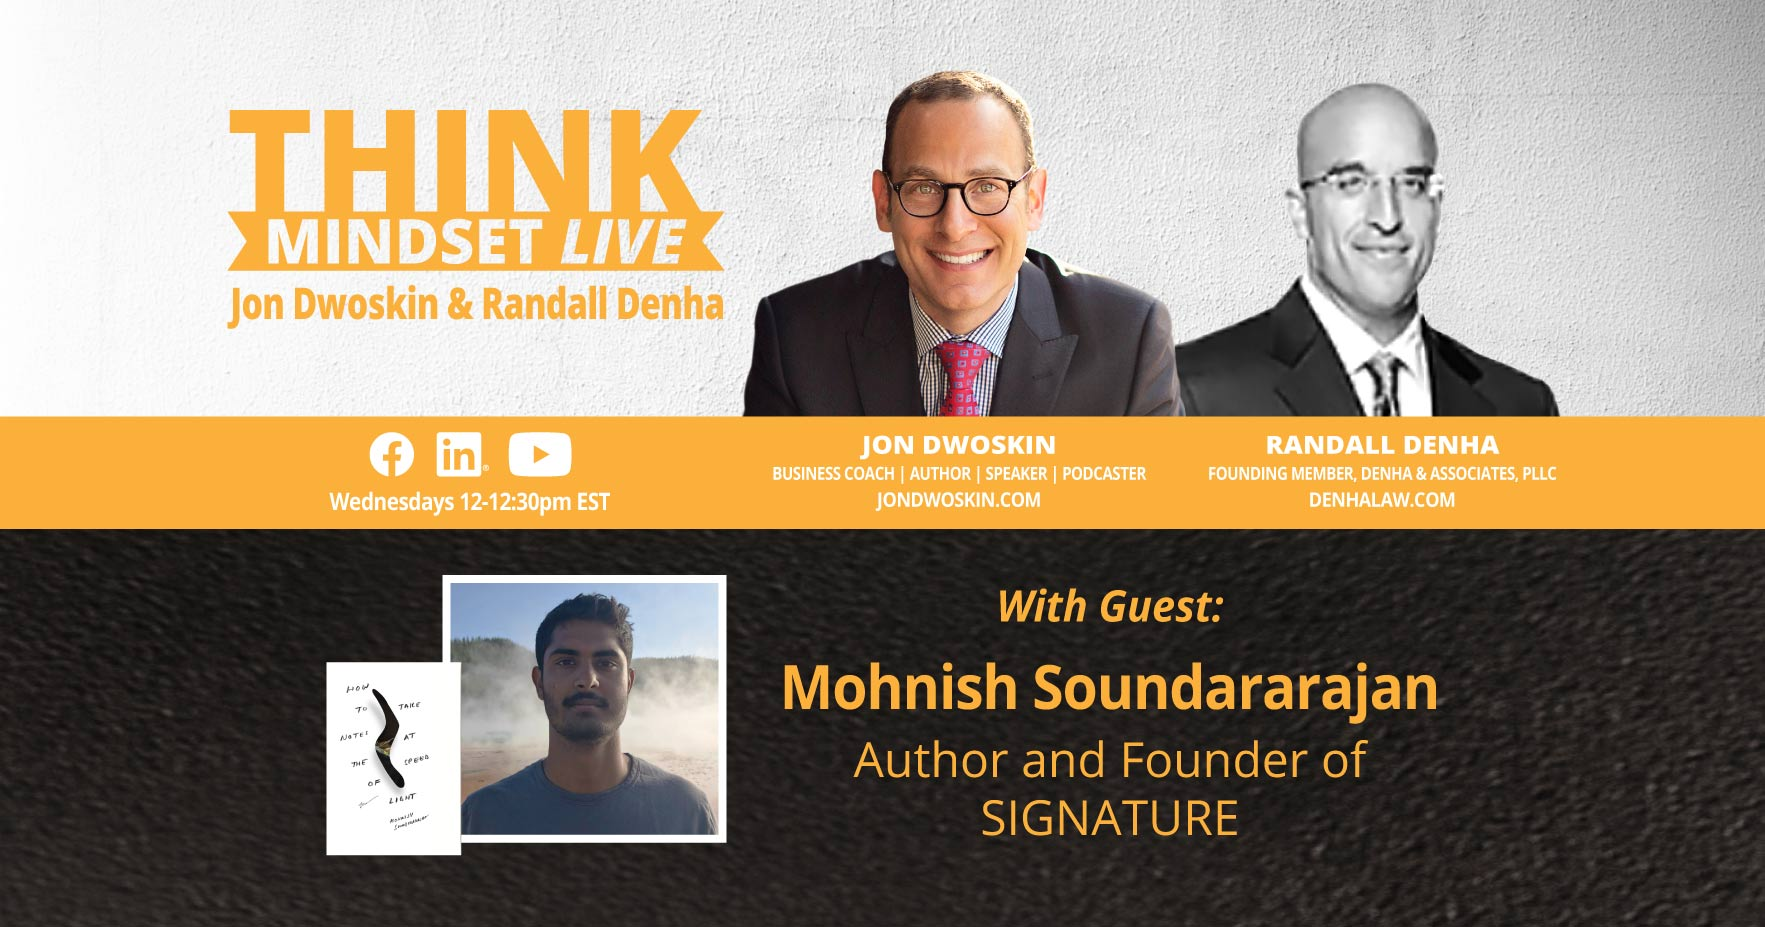 THINK Mindset LIVE: Jon Dwoskin and Randall Denha Talk with Mohnish Soundararajan